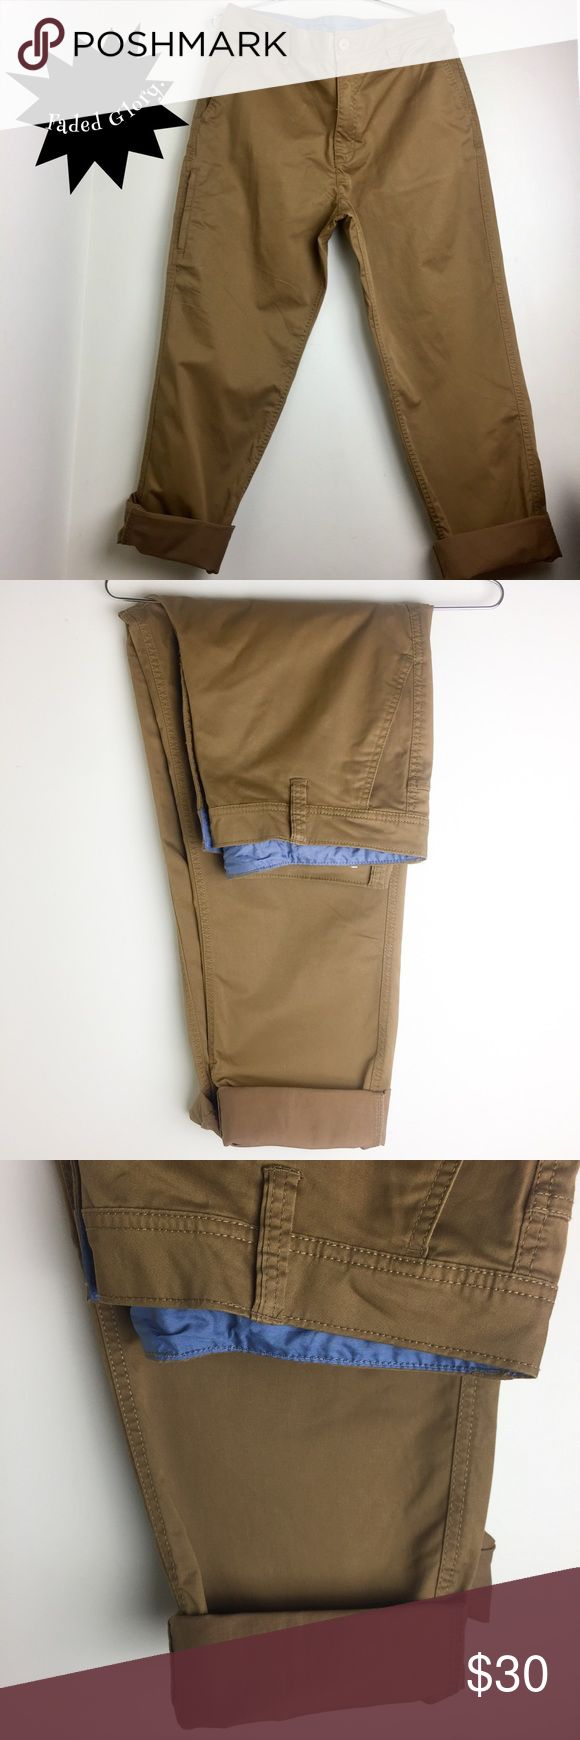 Faded Glory khaki pants. Size34/32. This cute pants are ready to go to a new lovely lady• New WT• cool cut• Two packets on the front plus a side one with a zipper • 34-32• Check all pictures please• questions please ask• No Trades• No 🅿️🅿️• Fast Shipping. Faded Glory Pants Capris